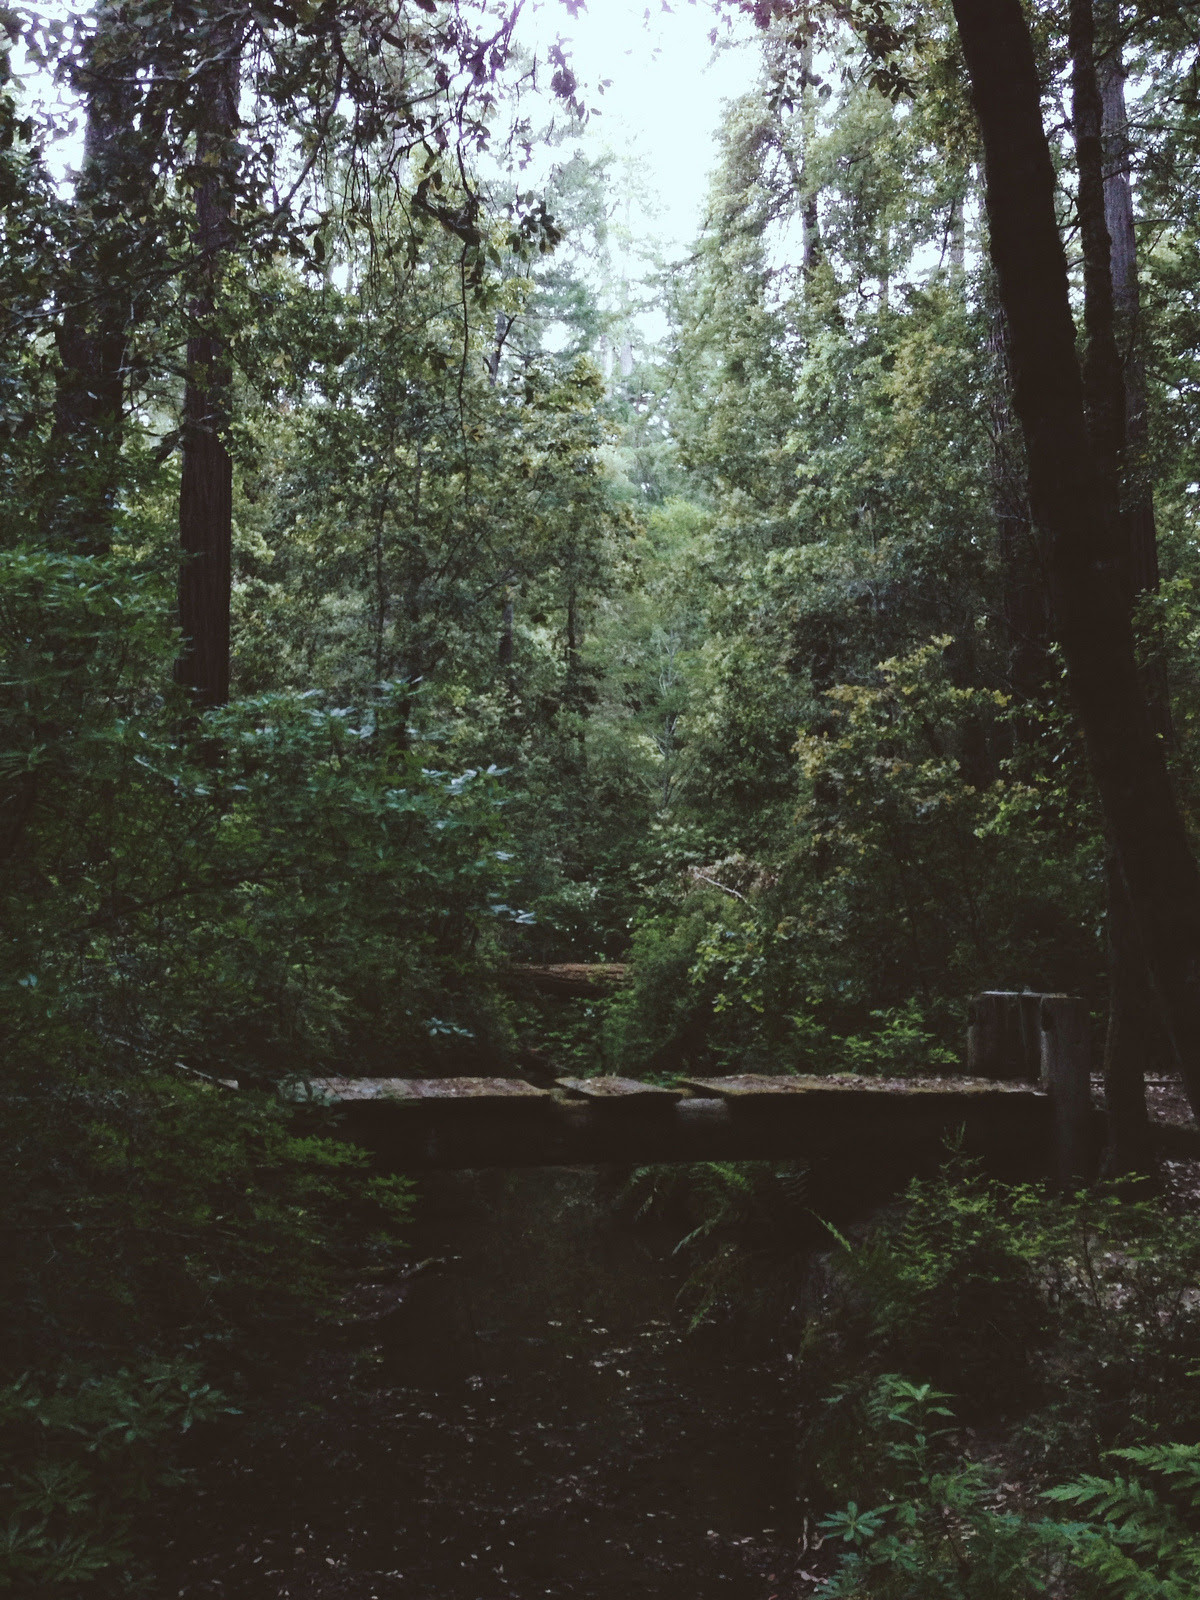 atraversso:  Beautiful  by Kevin Russ   The woods are mysterious. Who knows what lurks inside the dark shadows? Are there spirits or ghosts? Evil waiting to pounce on unsuspecting victims? Or maybe there's just beauty and warmth. And maybe a deer or two.